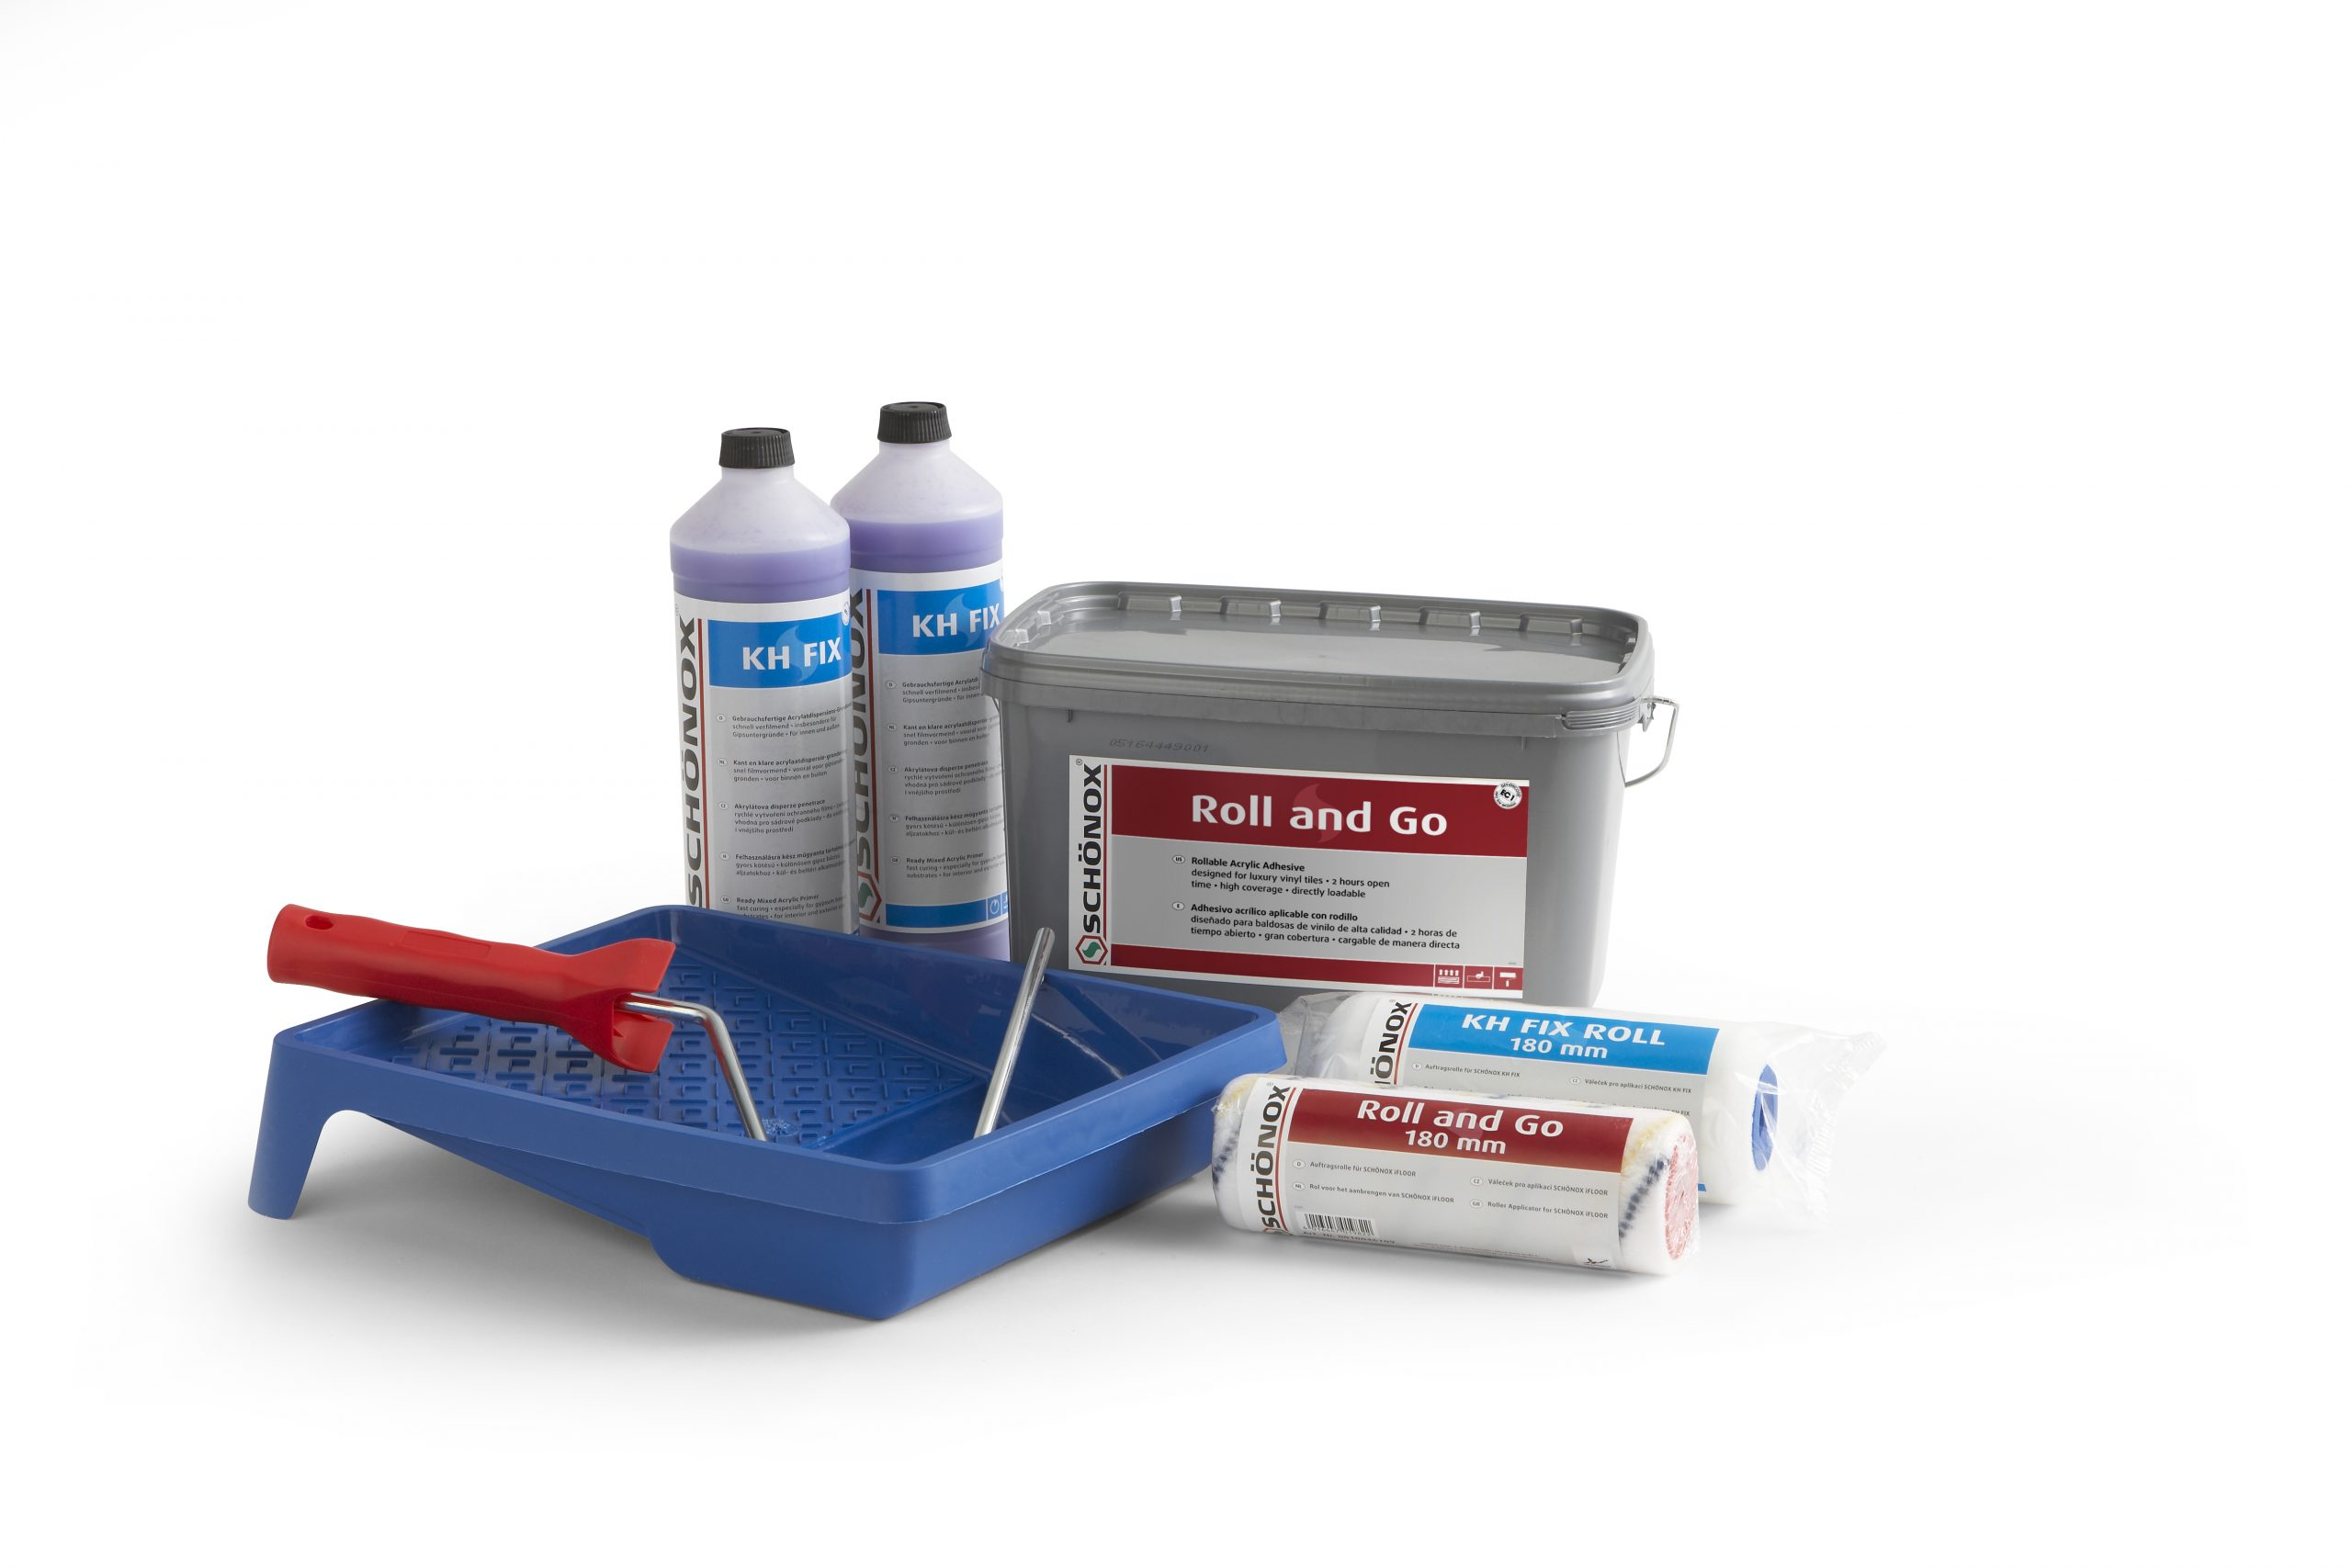 Image of roll & go Product Kit